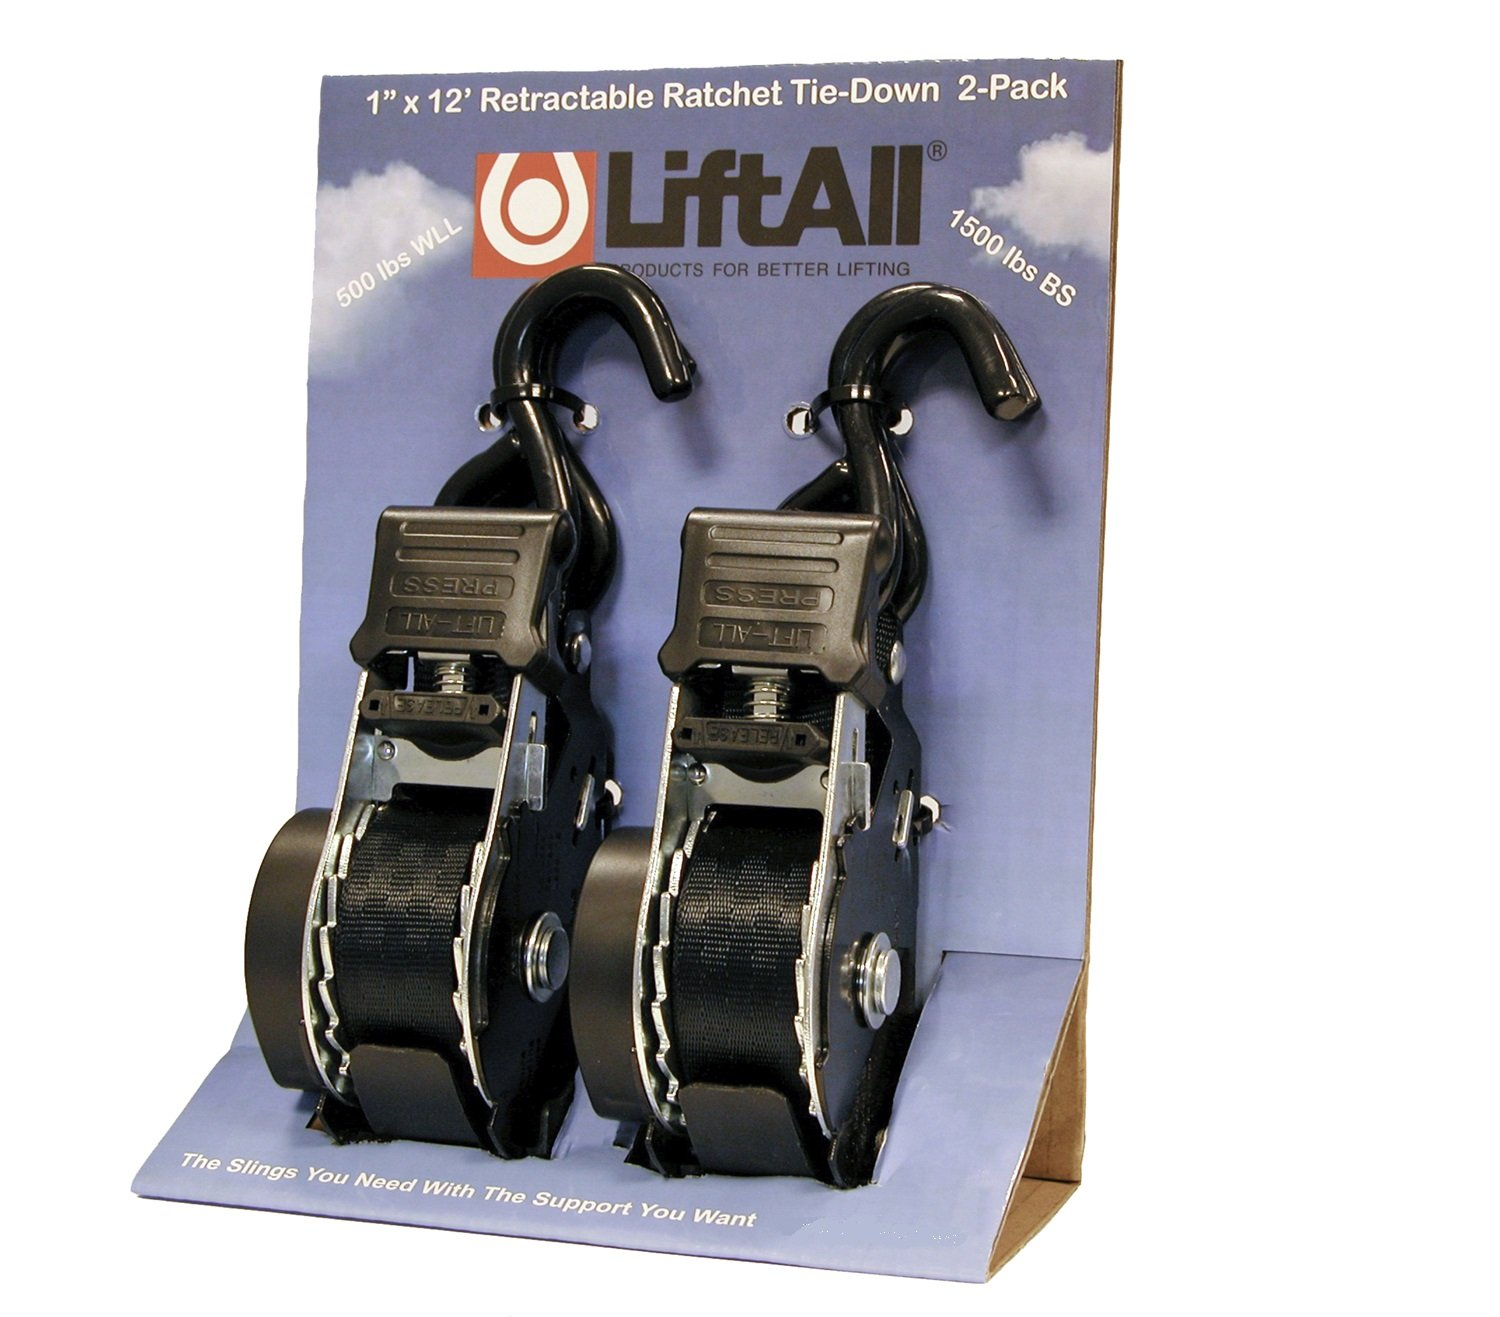 S-Hook 2.25 Width 3 Height Liftall 60203 Retractable Ratchet Tie-Down Assembly 5.75 Length 1 x 12 2 Per Pack